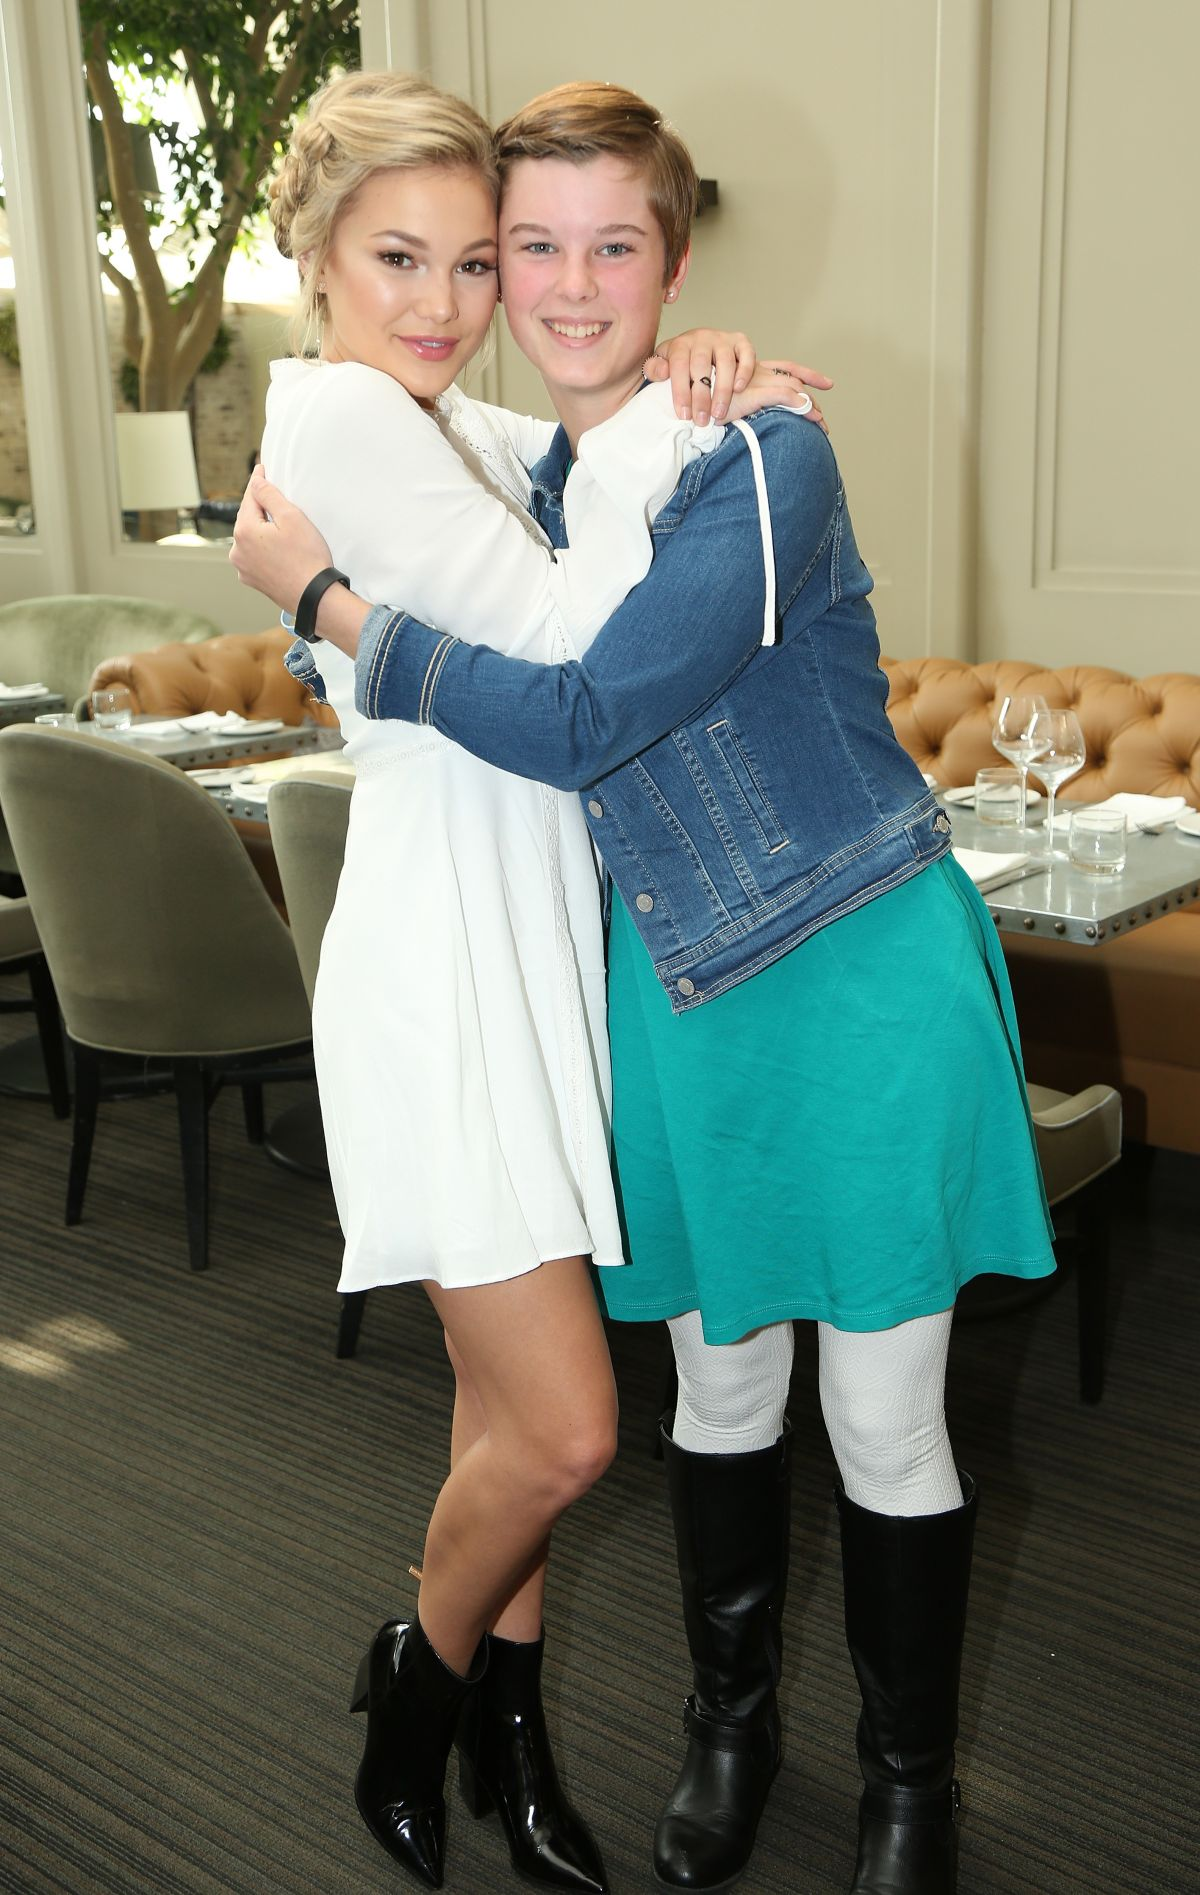 Olivia Holt At St. Jude Children's Research Hospital Luncheon in LA   olivia-holt-at-st.-jude-children-s-research-hospital-luncheon-in-la_8